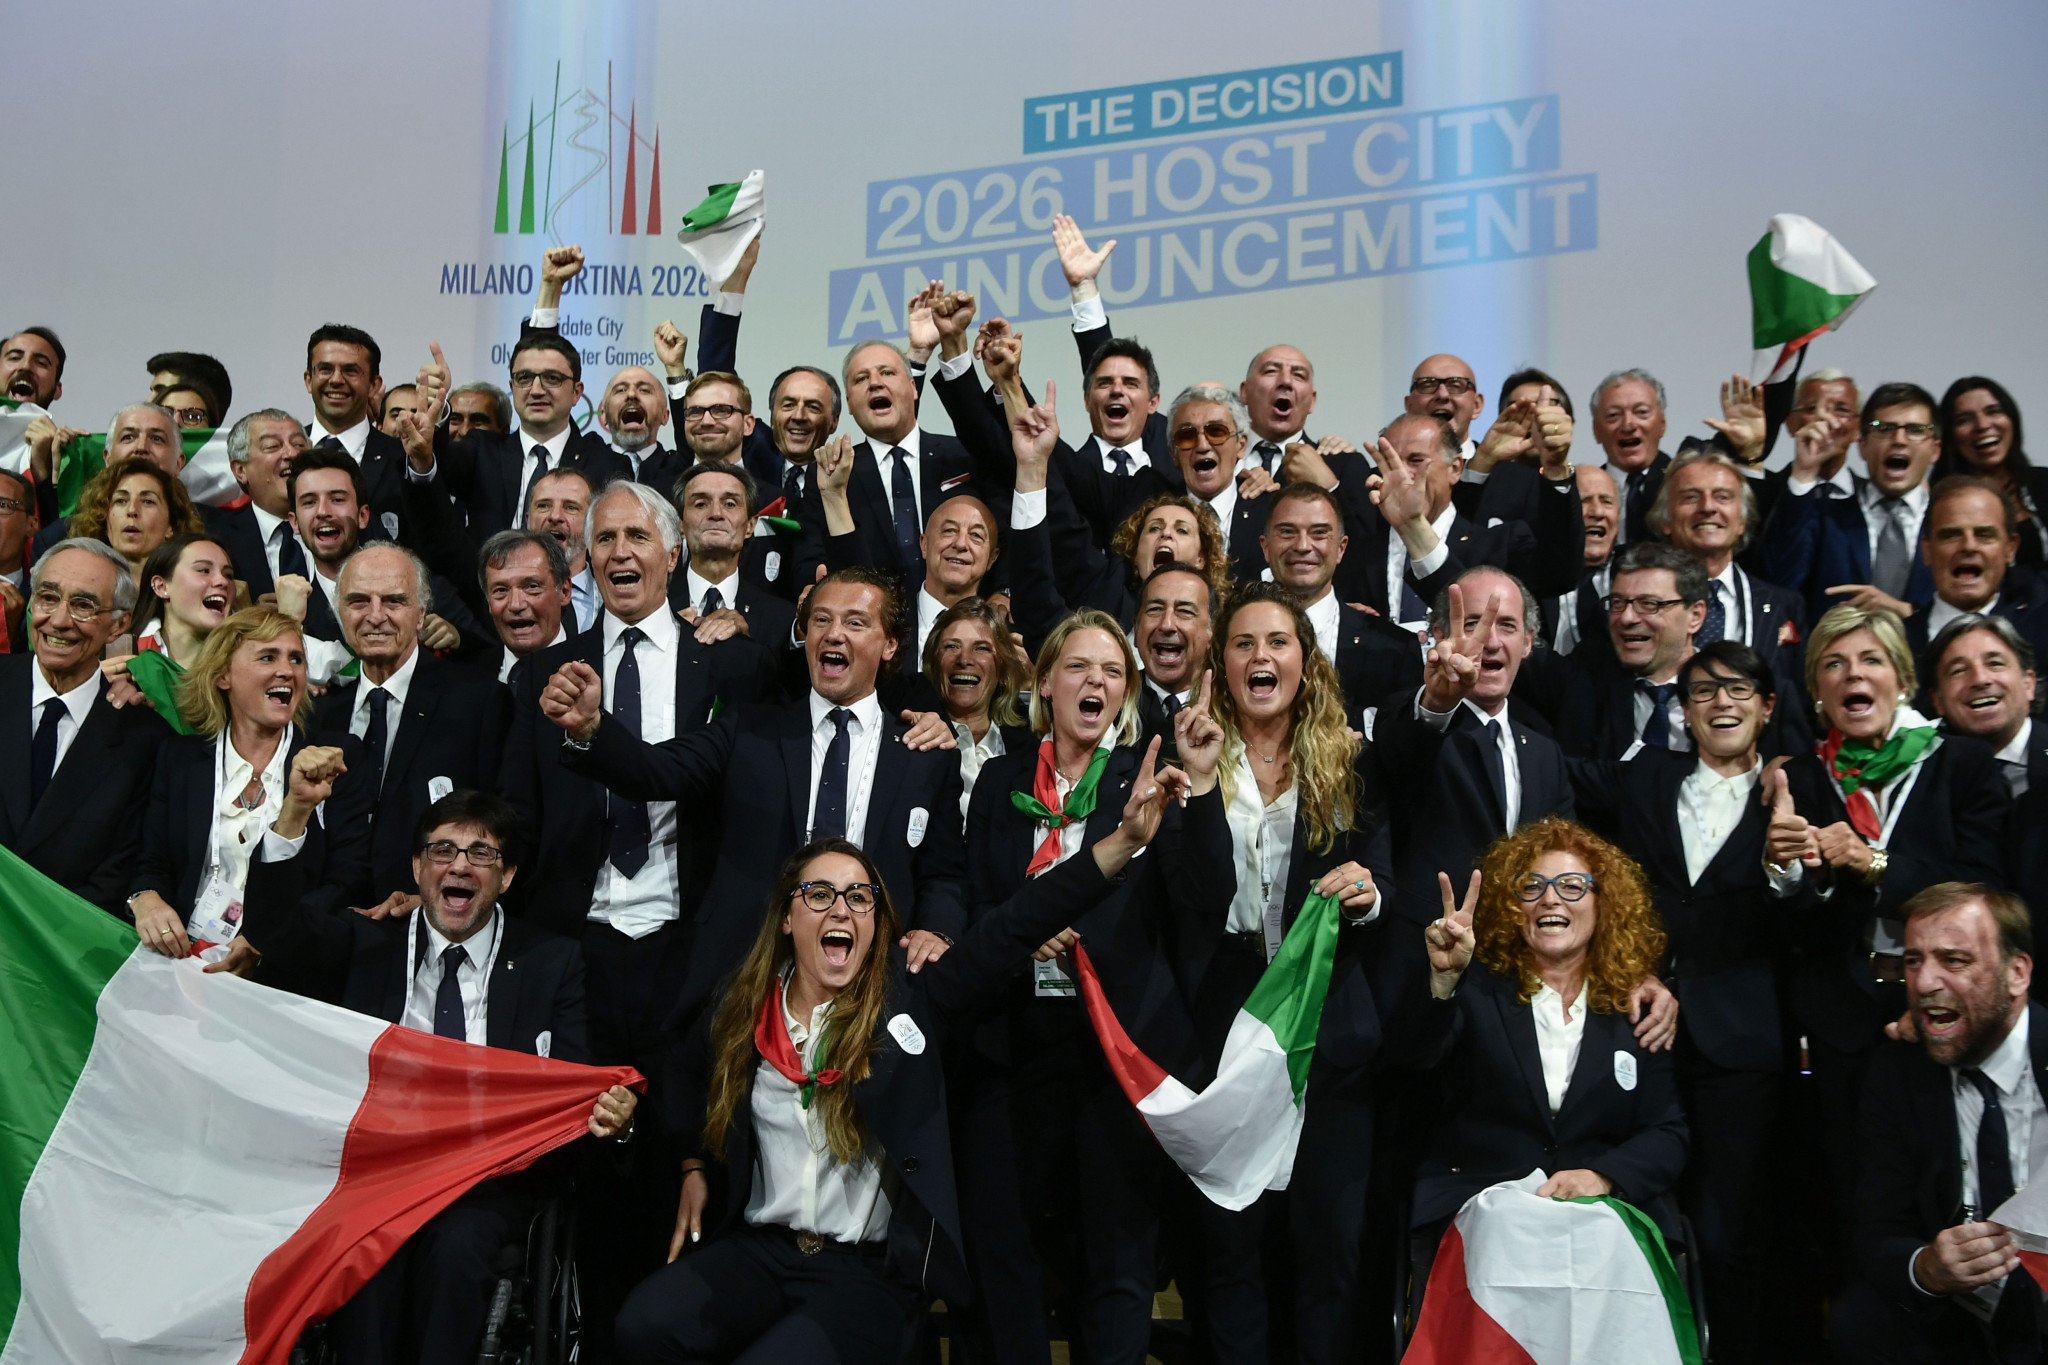 International Olympic Committee awards Italy as host of 2026 Winter Olympics